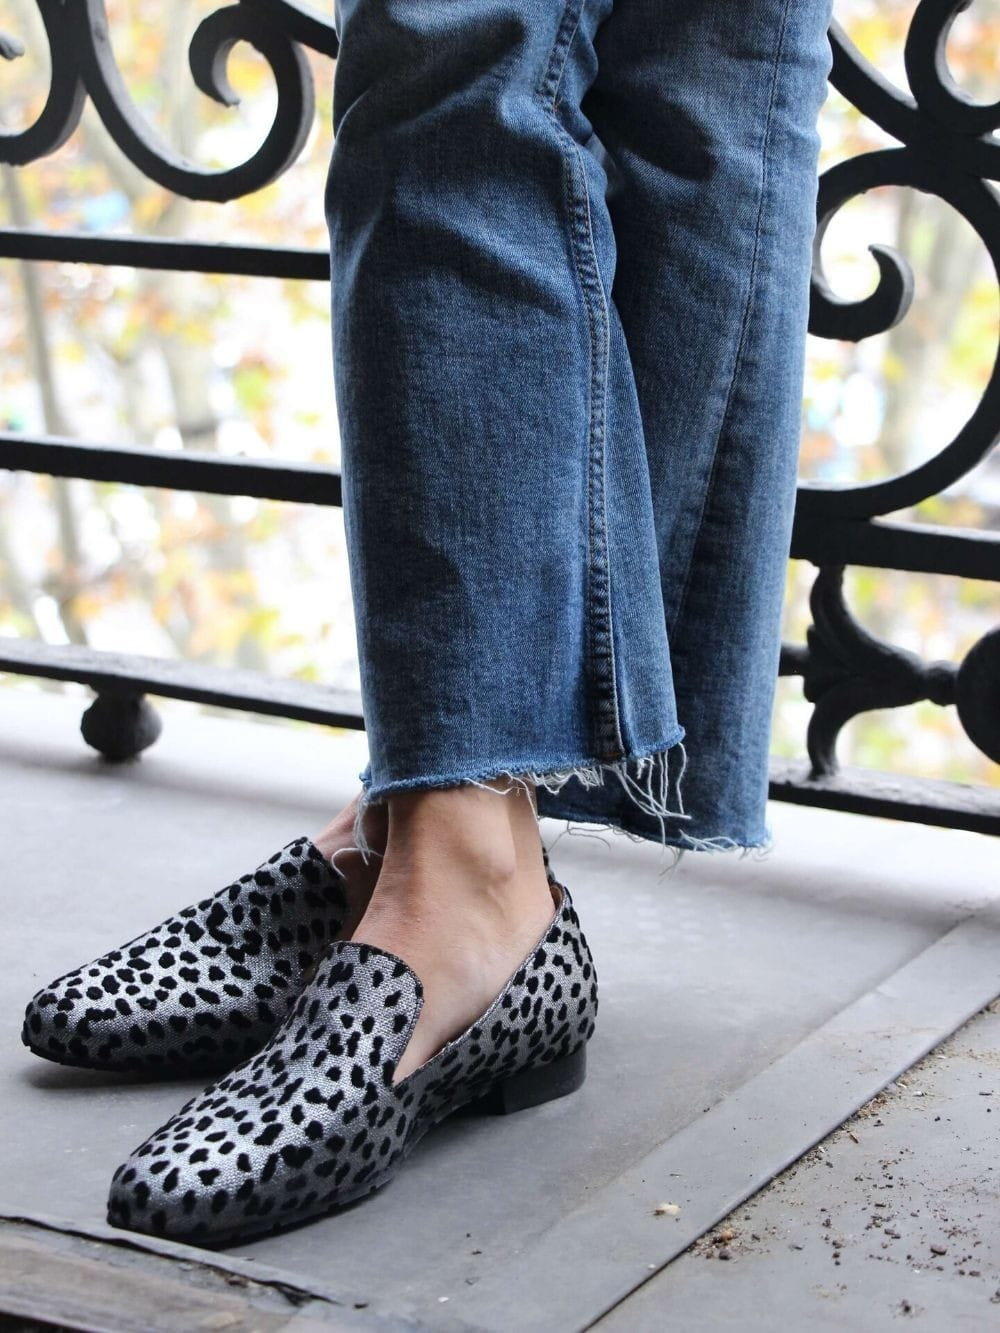 Vegan and sustainable shoes-Cougar